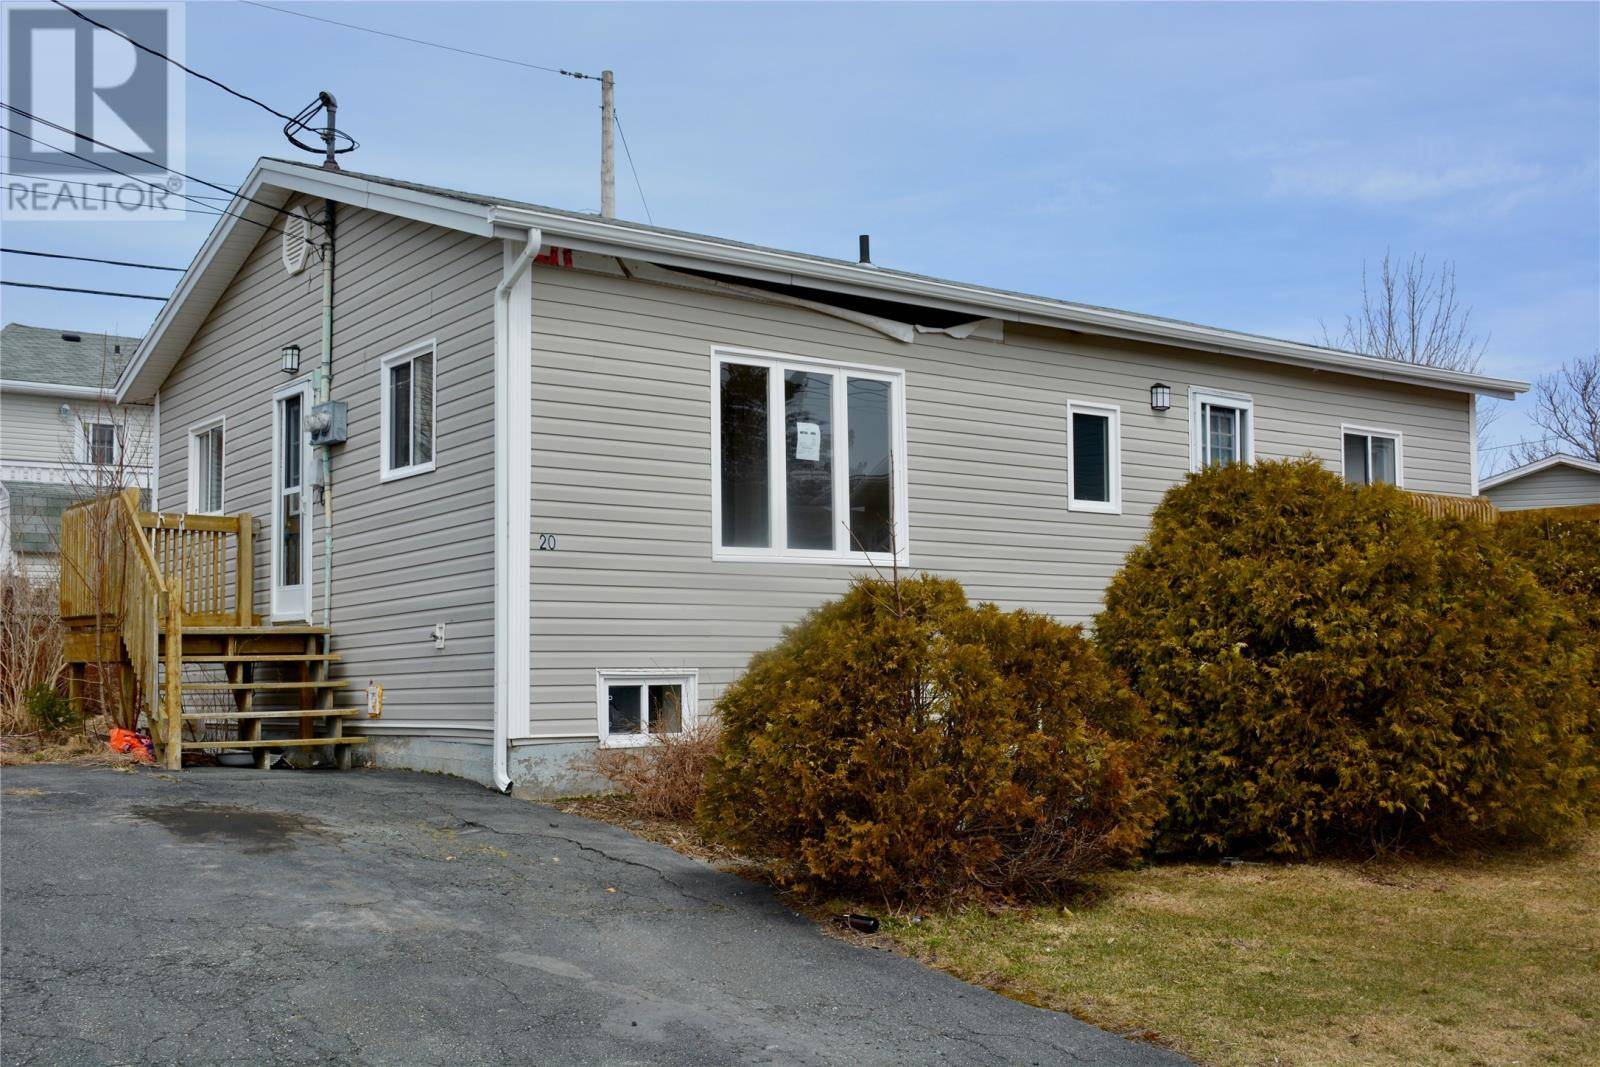 House for sale at 20 Dunns Pl St. John's Newfoundland - MLS: 1207549